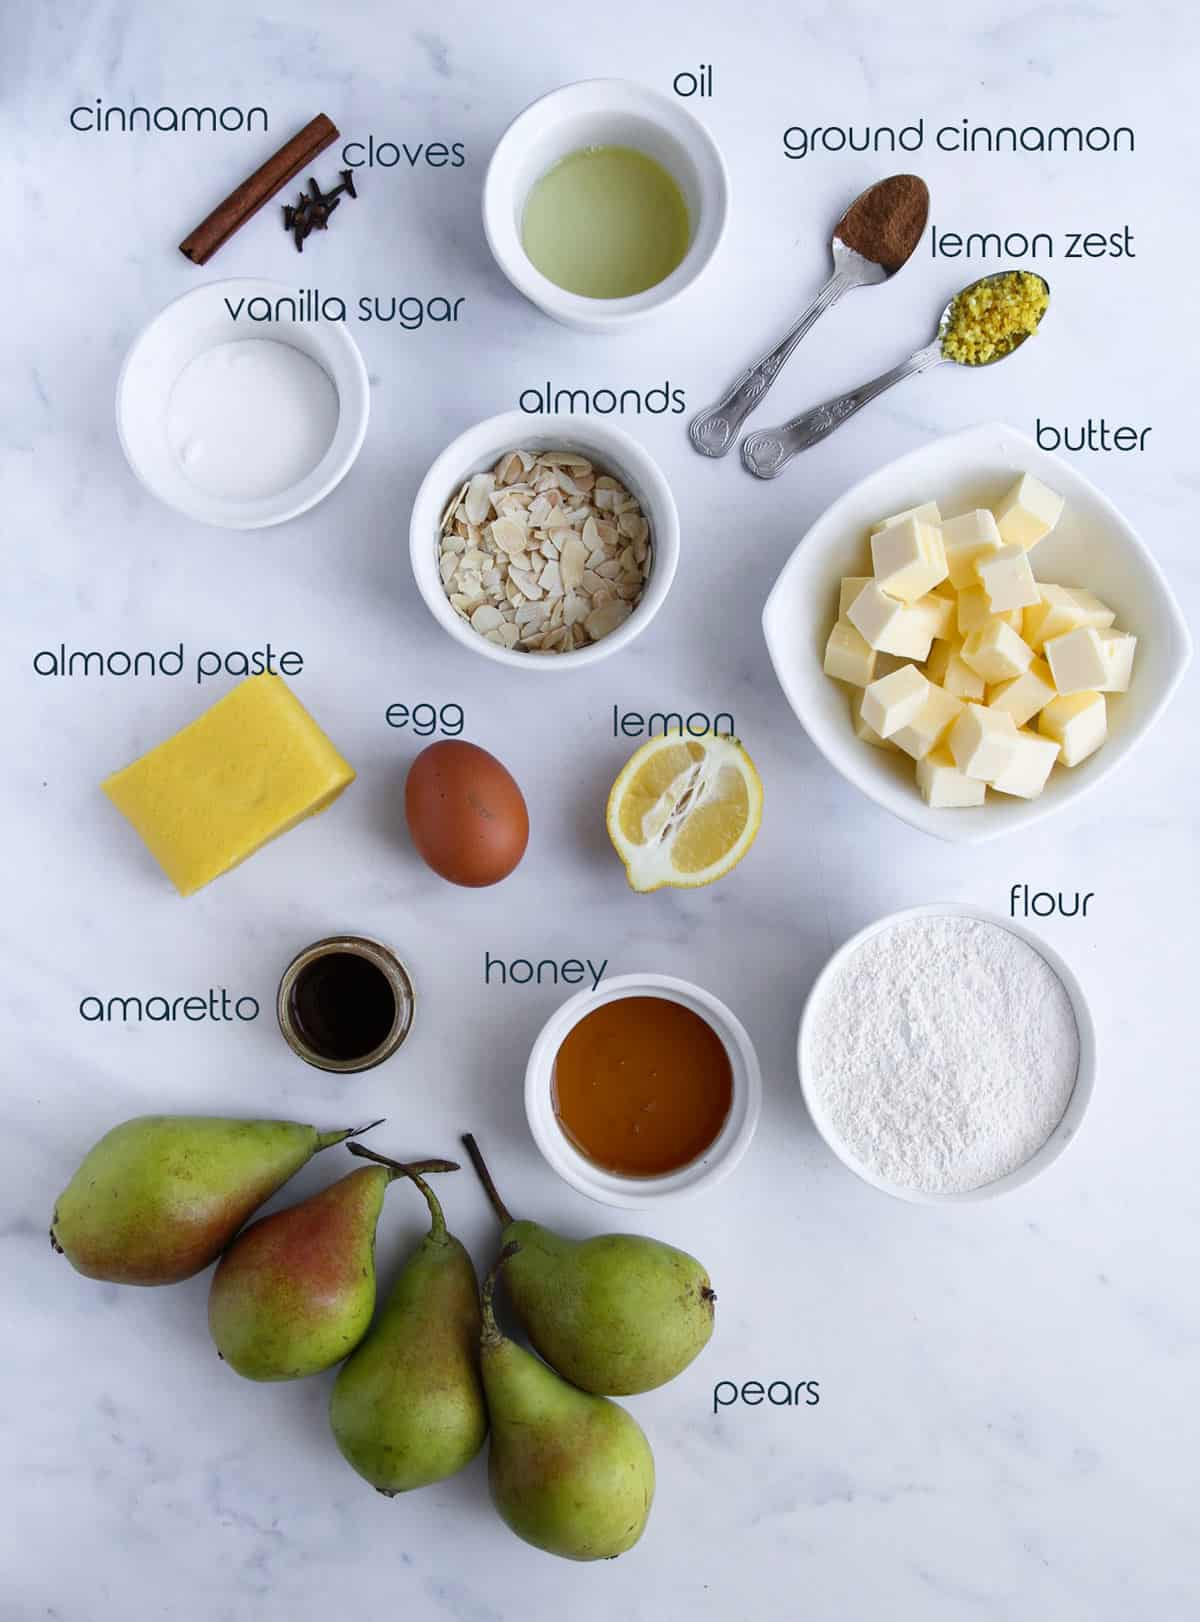 Ingredients for almond pear French tart placed on the counter.